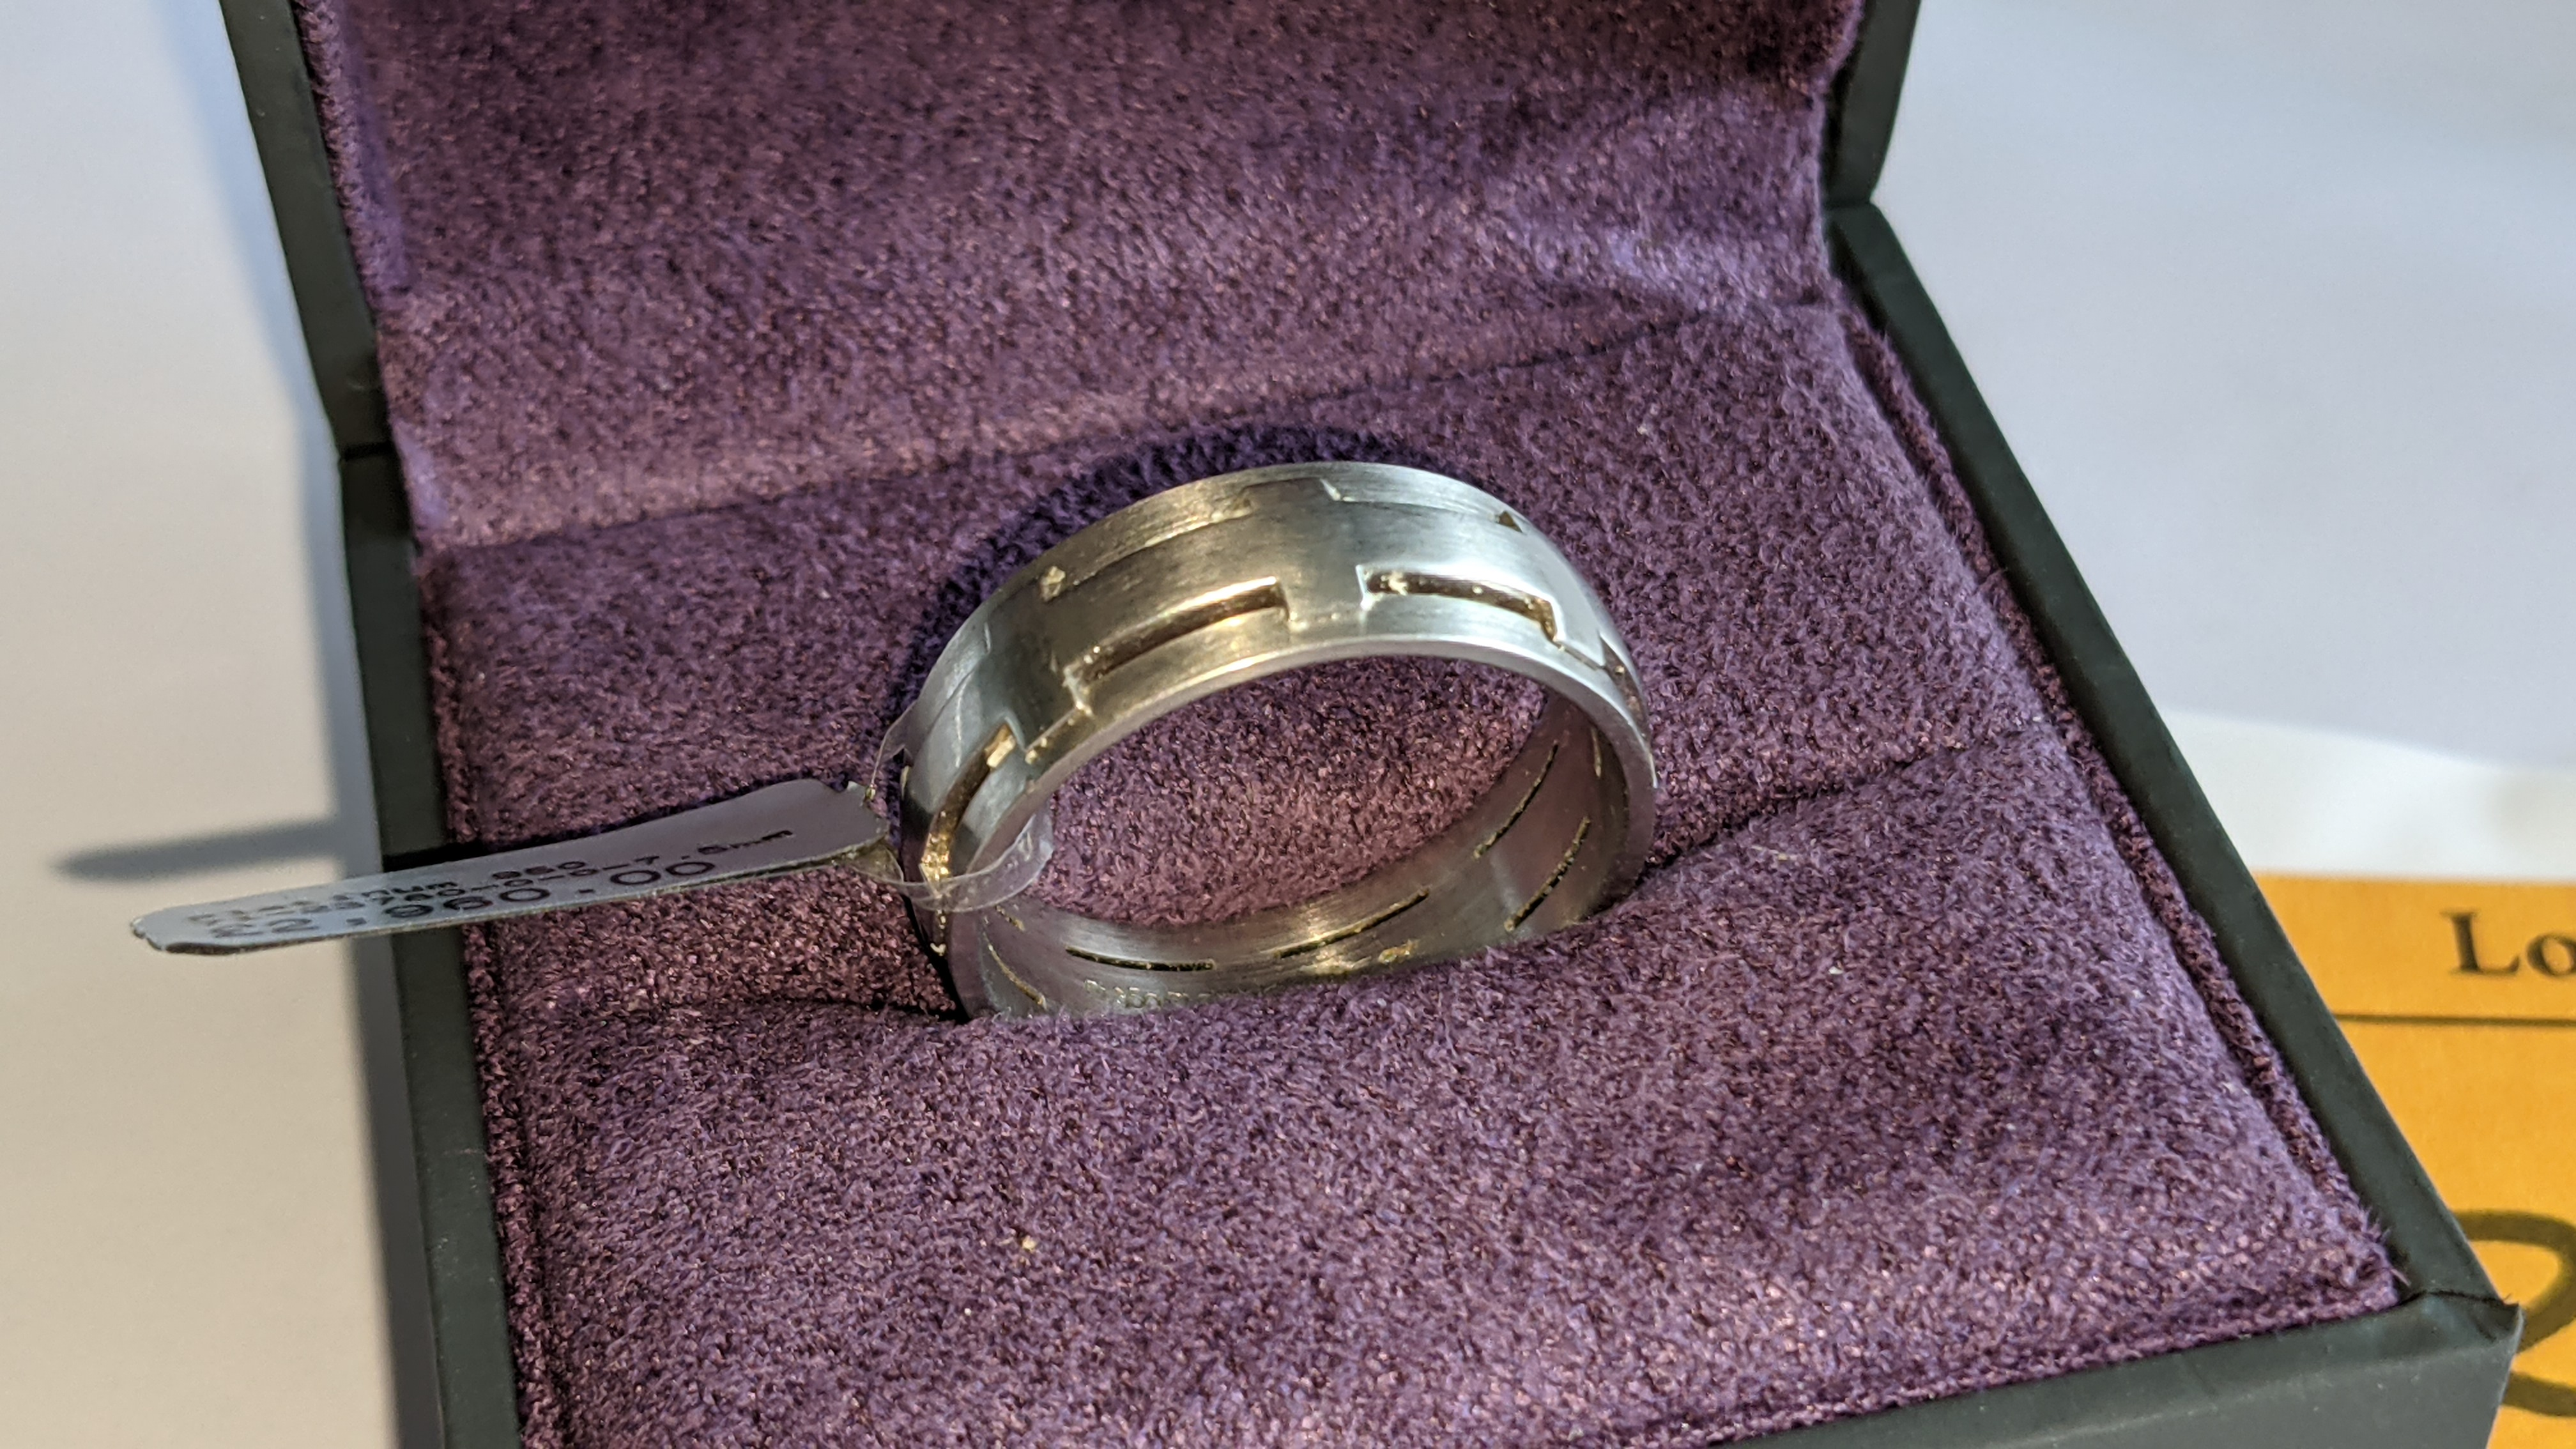 Platinum 950 ring in matt & polished finish, 7.5mm wide. RRP £2,960 - Image 3 of 15